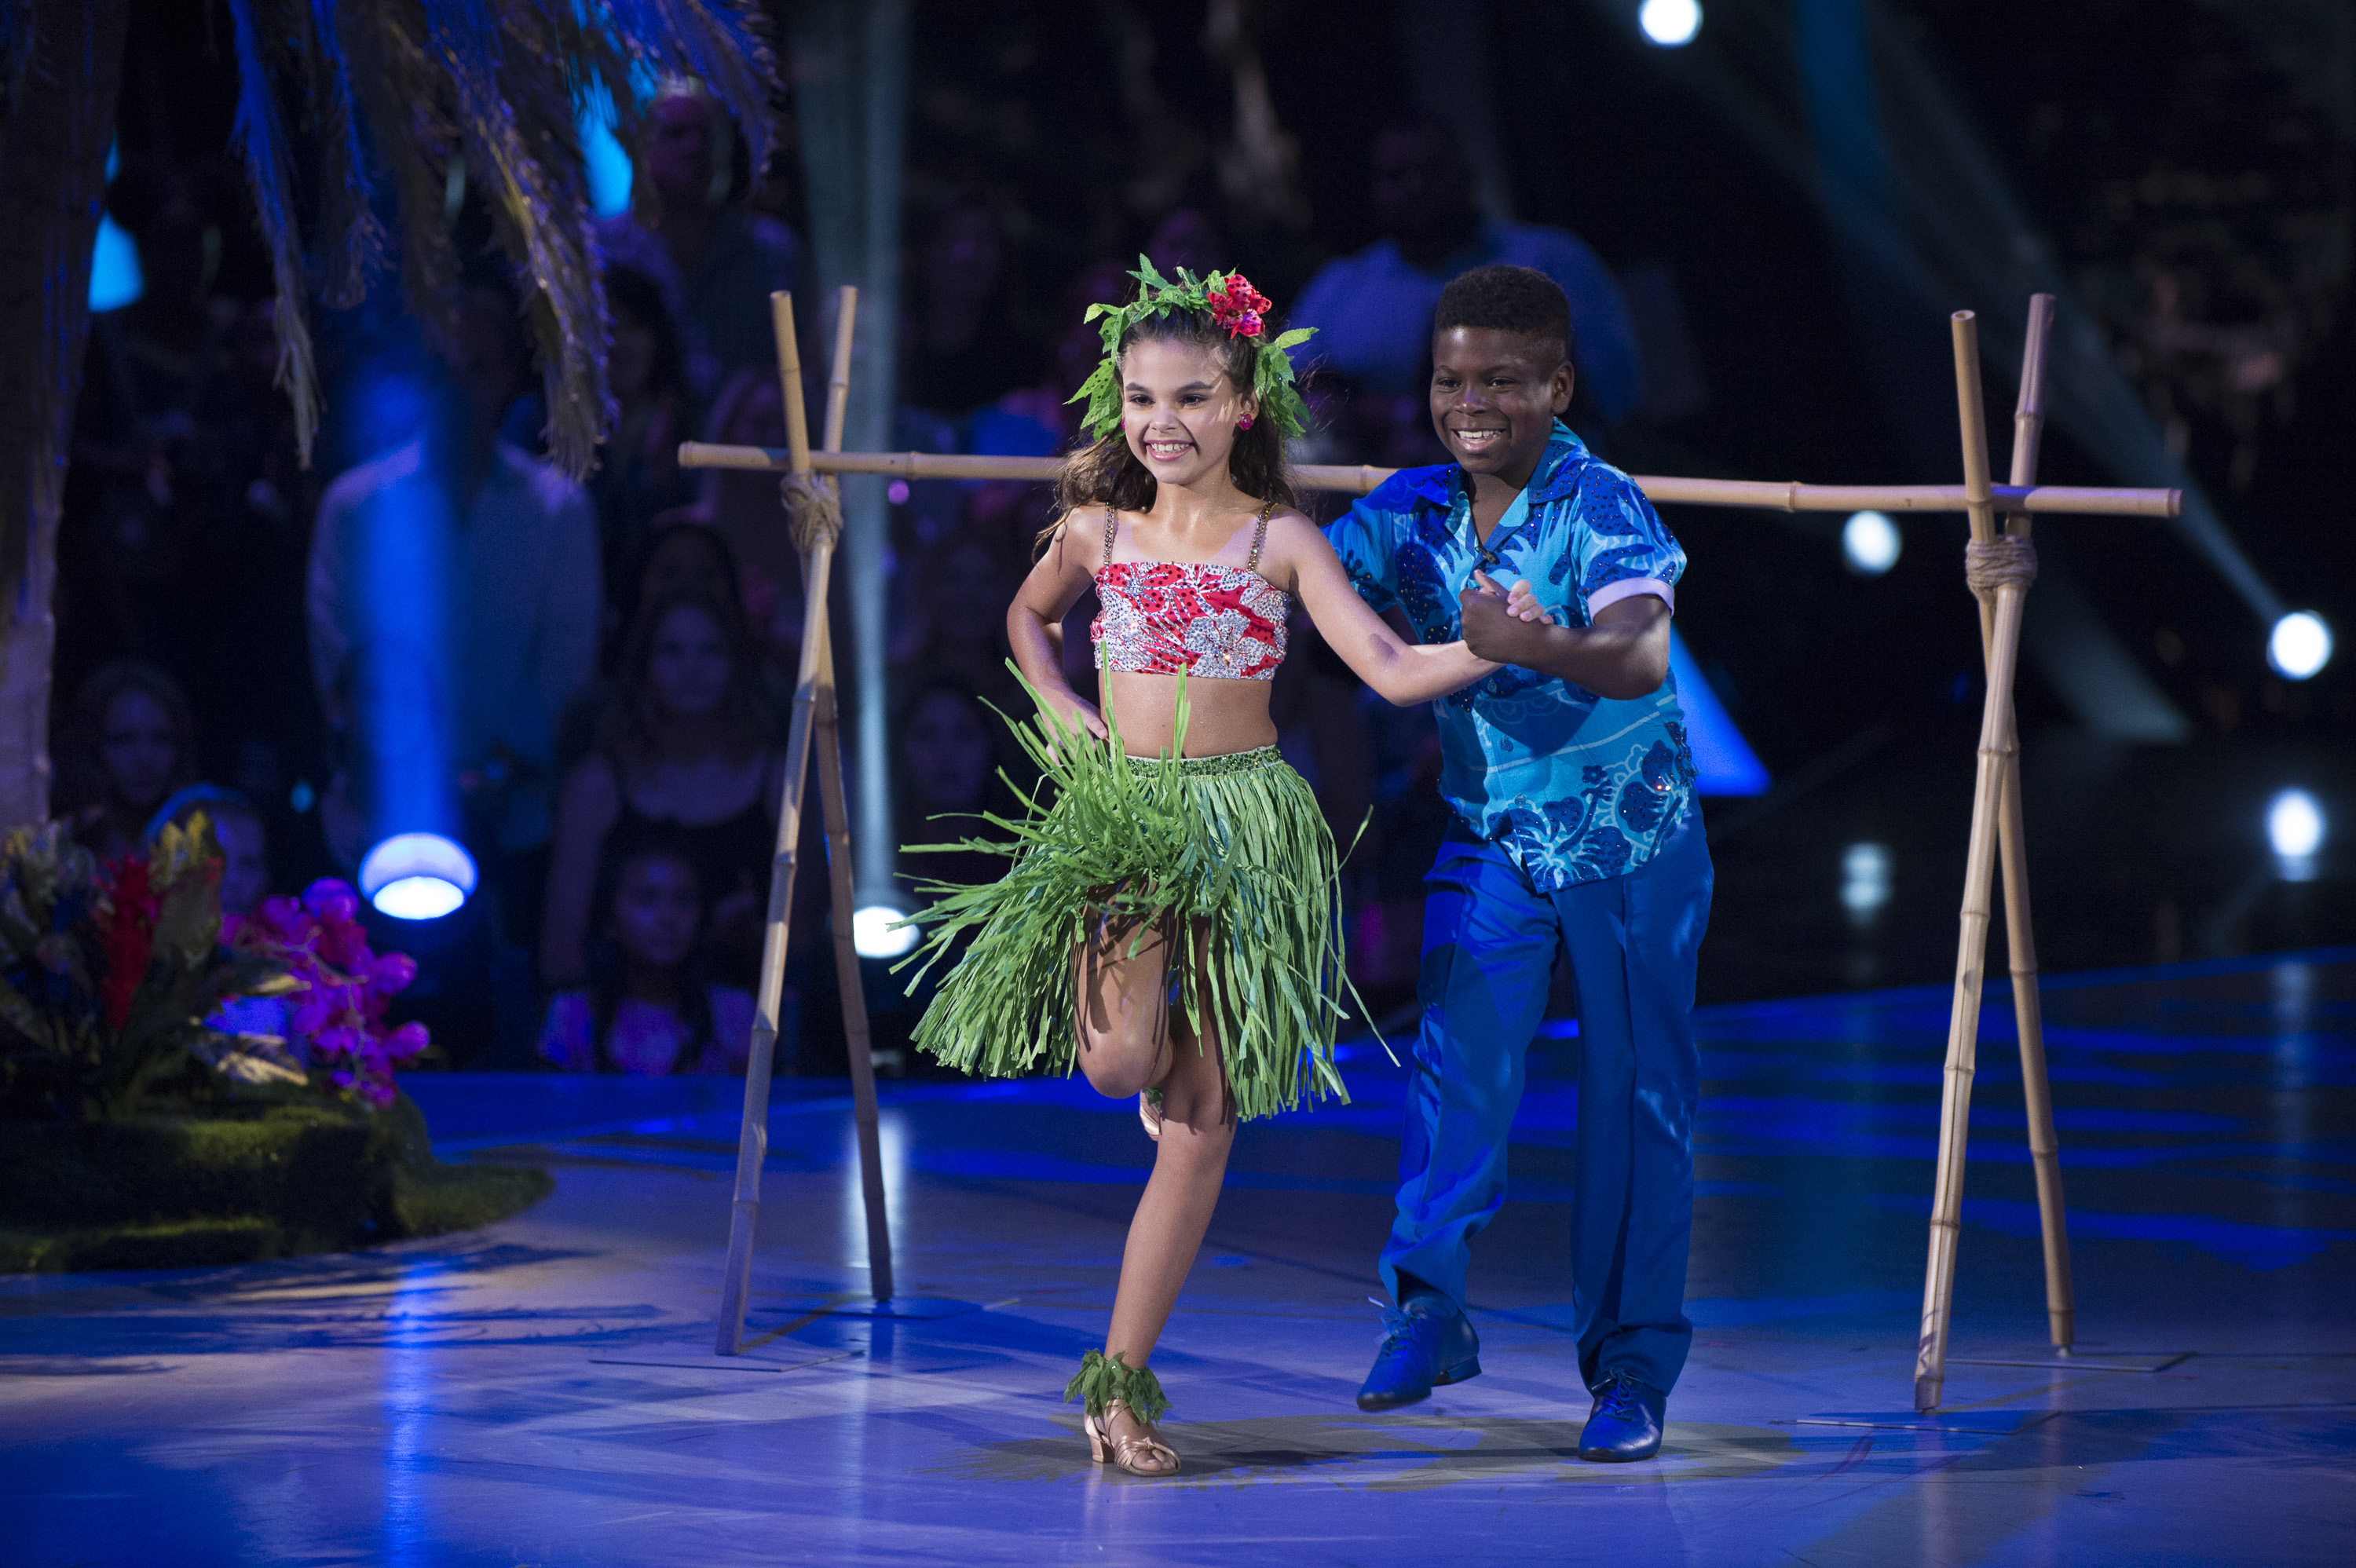 Kids dancing together in a competition